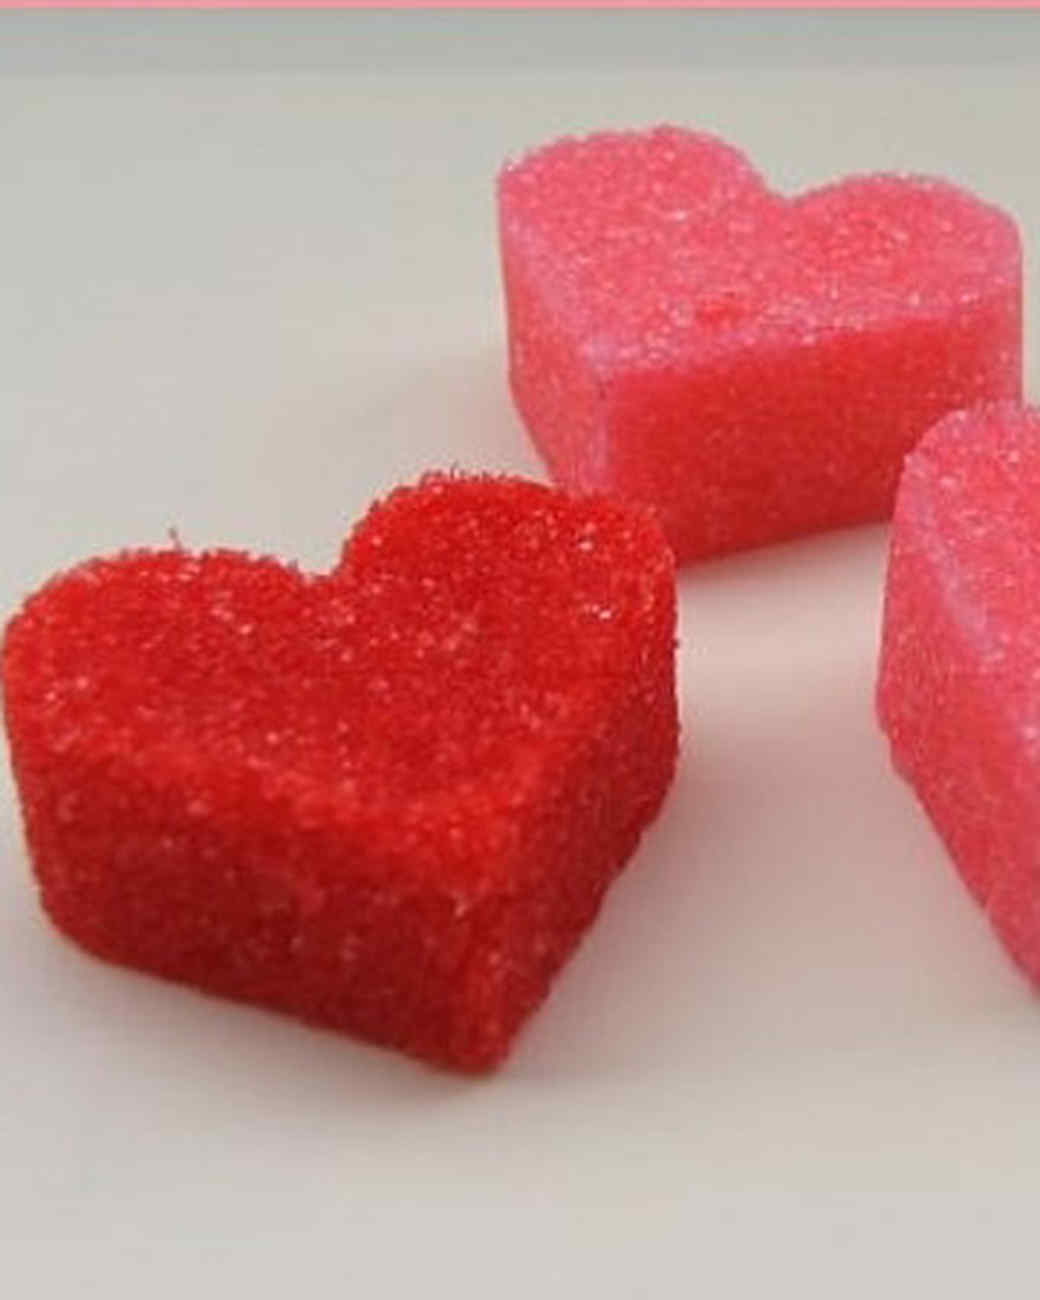 vday_treat_ugc09_heart_sugarcubes.jpg